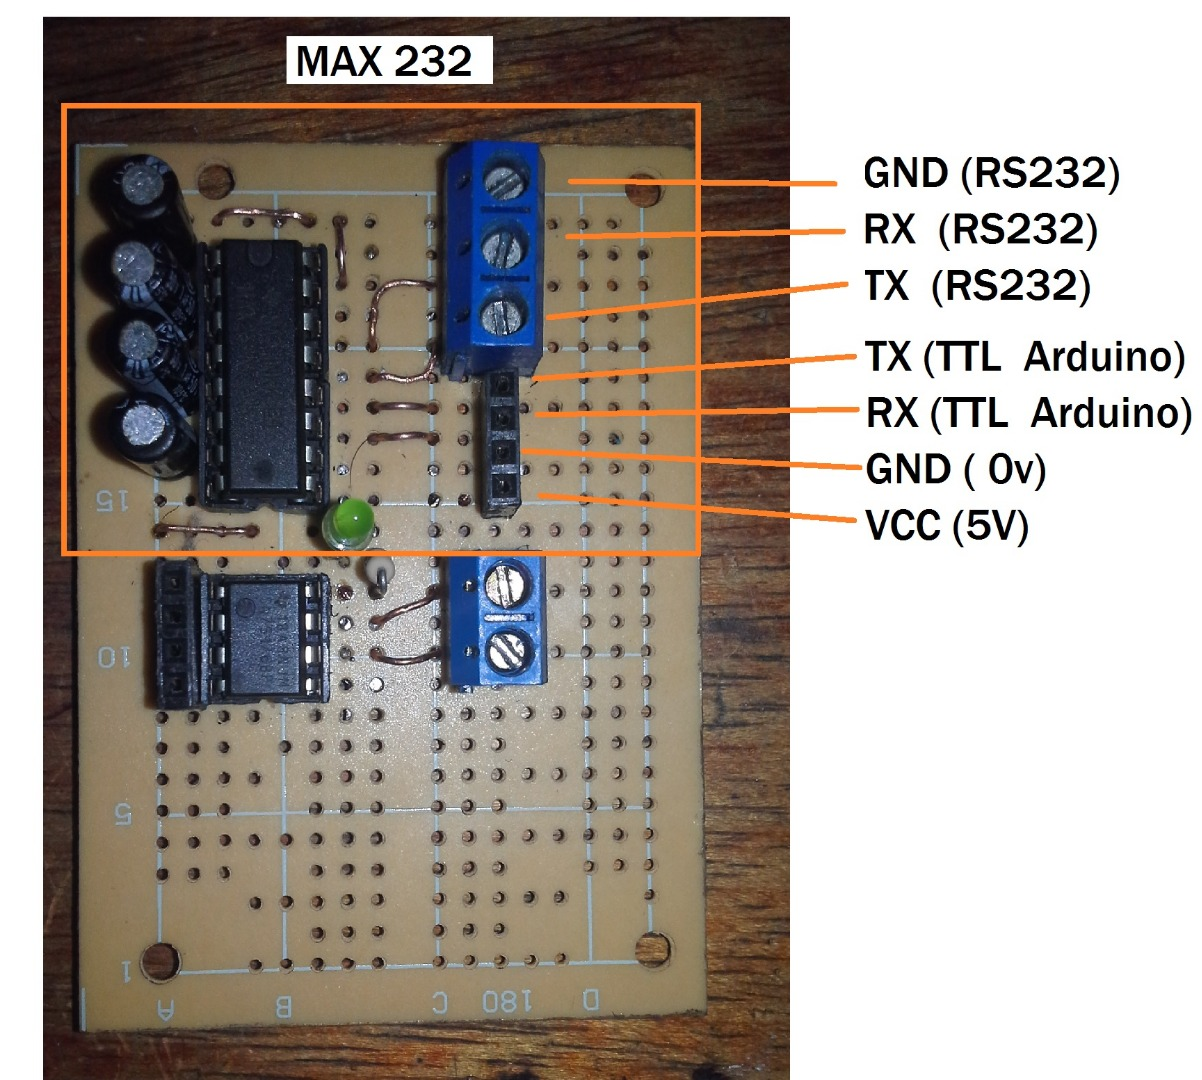 Modbus Rtu Master With Arduino Via Rs232 Ttl To Converter By Max232 Is Used Voltage